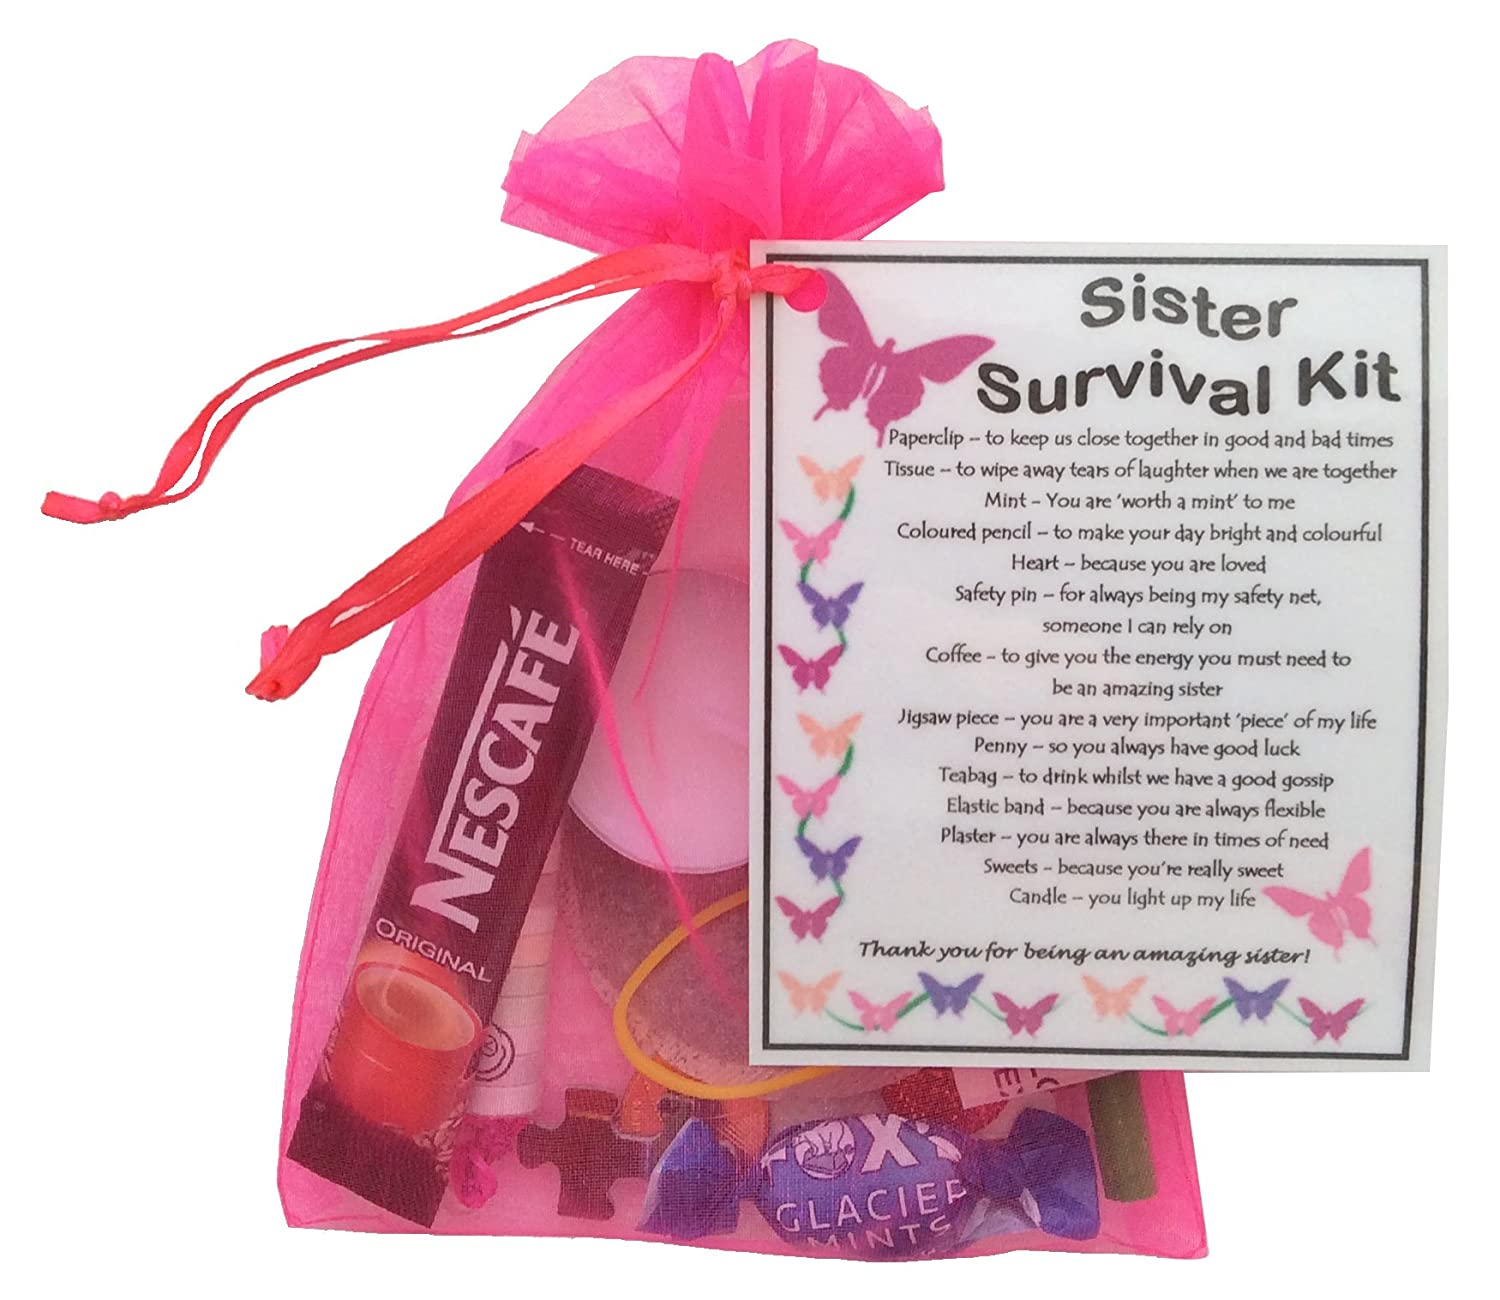 Amazon.com: Sister Survival Kit Gift (Great present for Birthday ...